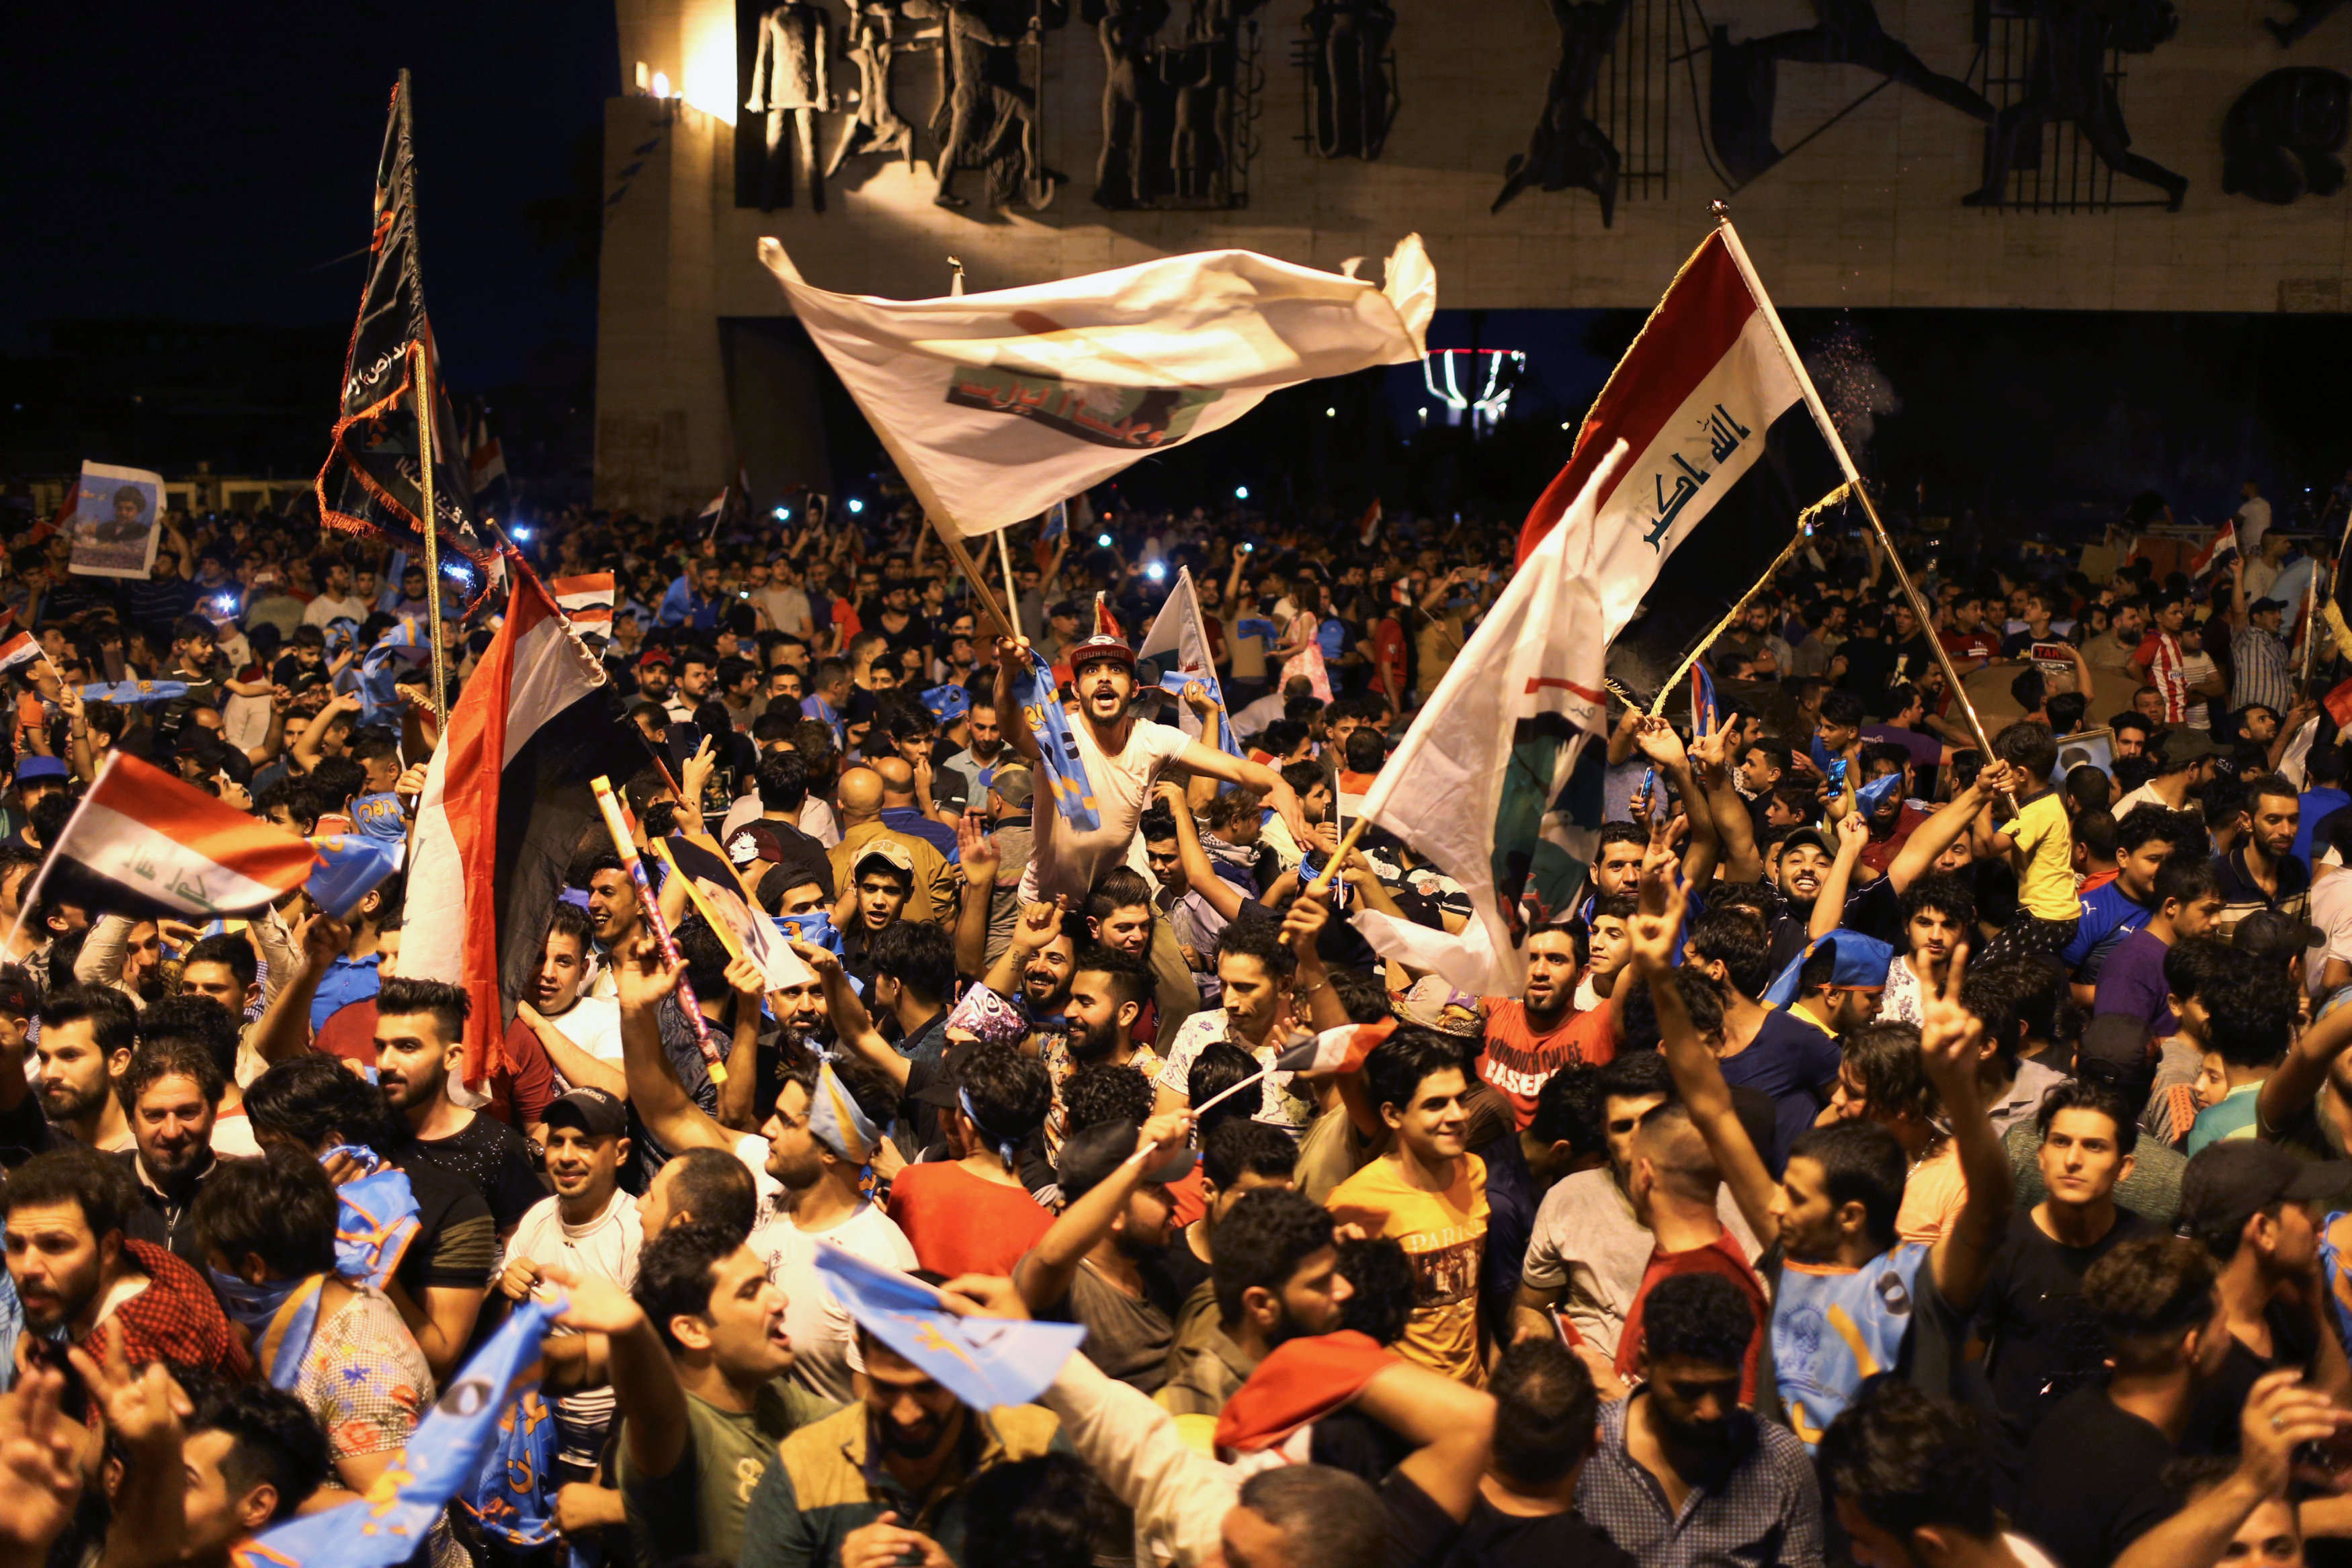 Iraqi supporters of cleric Moqtada al-Sadr's Sairun coalition celebrate after results of Iraq's parliamentary election were announced in Baghdad, Iraq, on May 14, 2018.